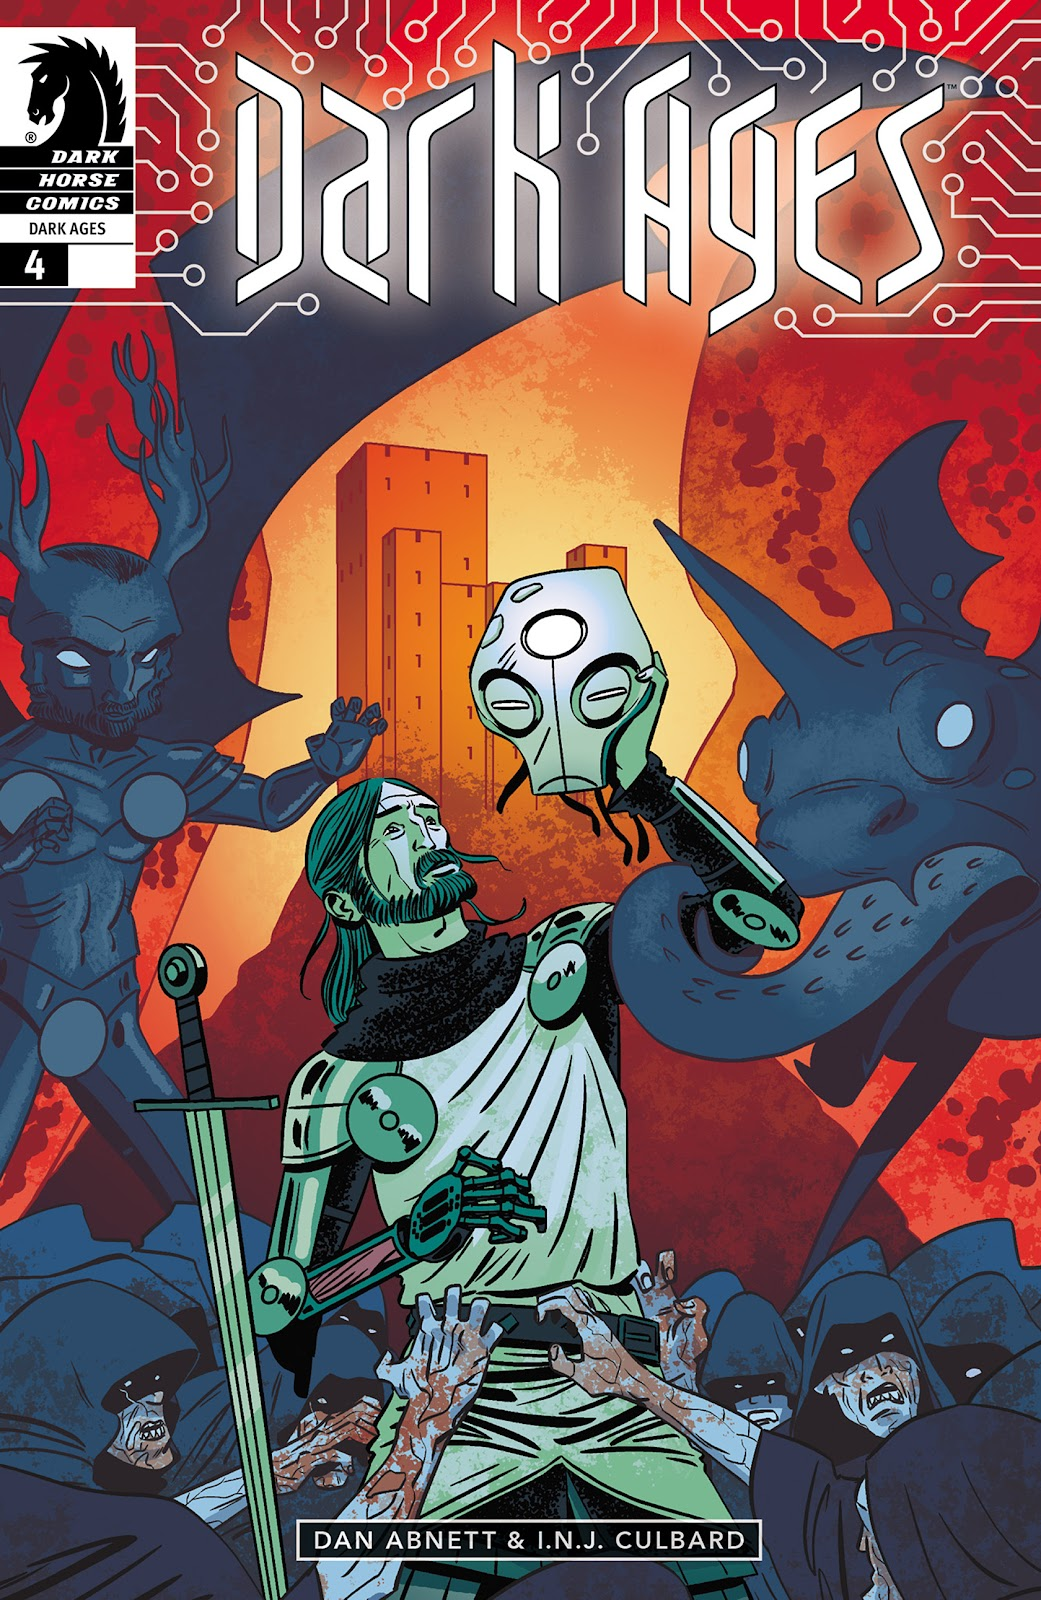 Read online Dark Ages comic -  Issue #4 - 1